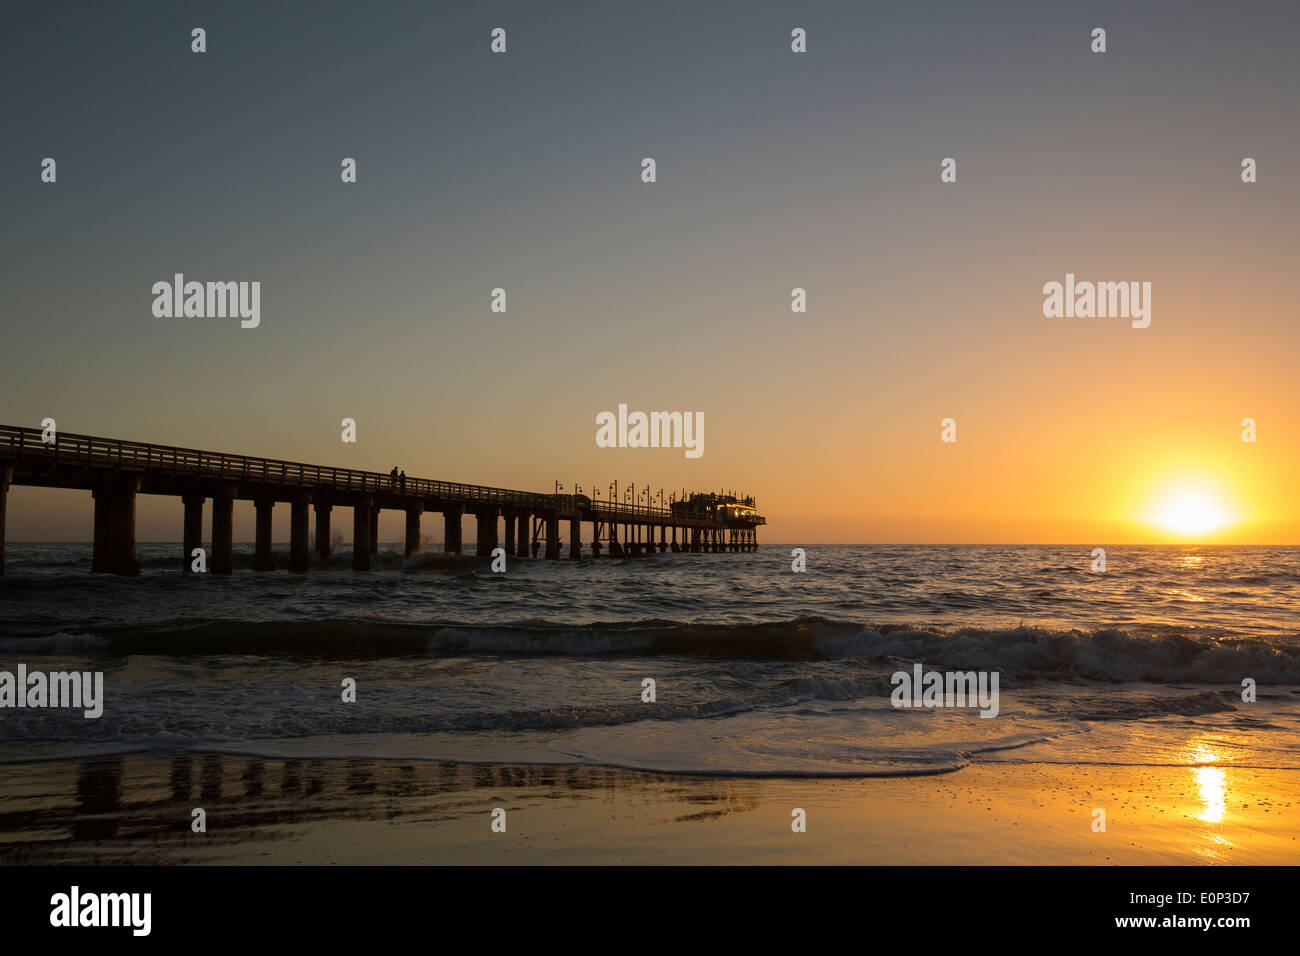 Sunset over Swakopmund Jetty and Atlantic ocean - Stock Image